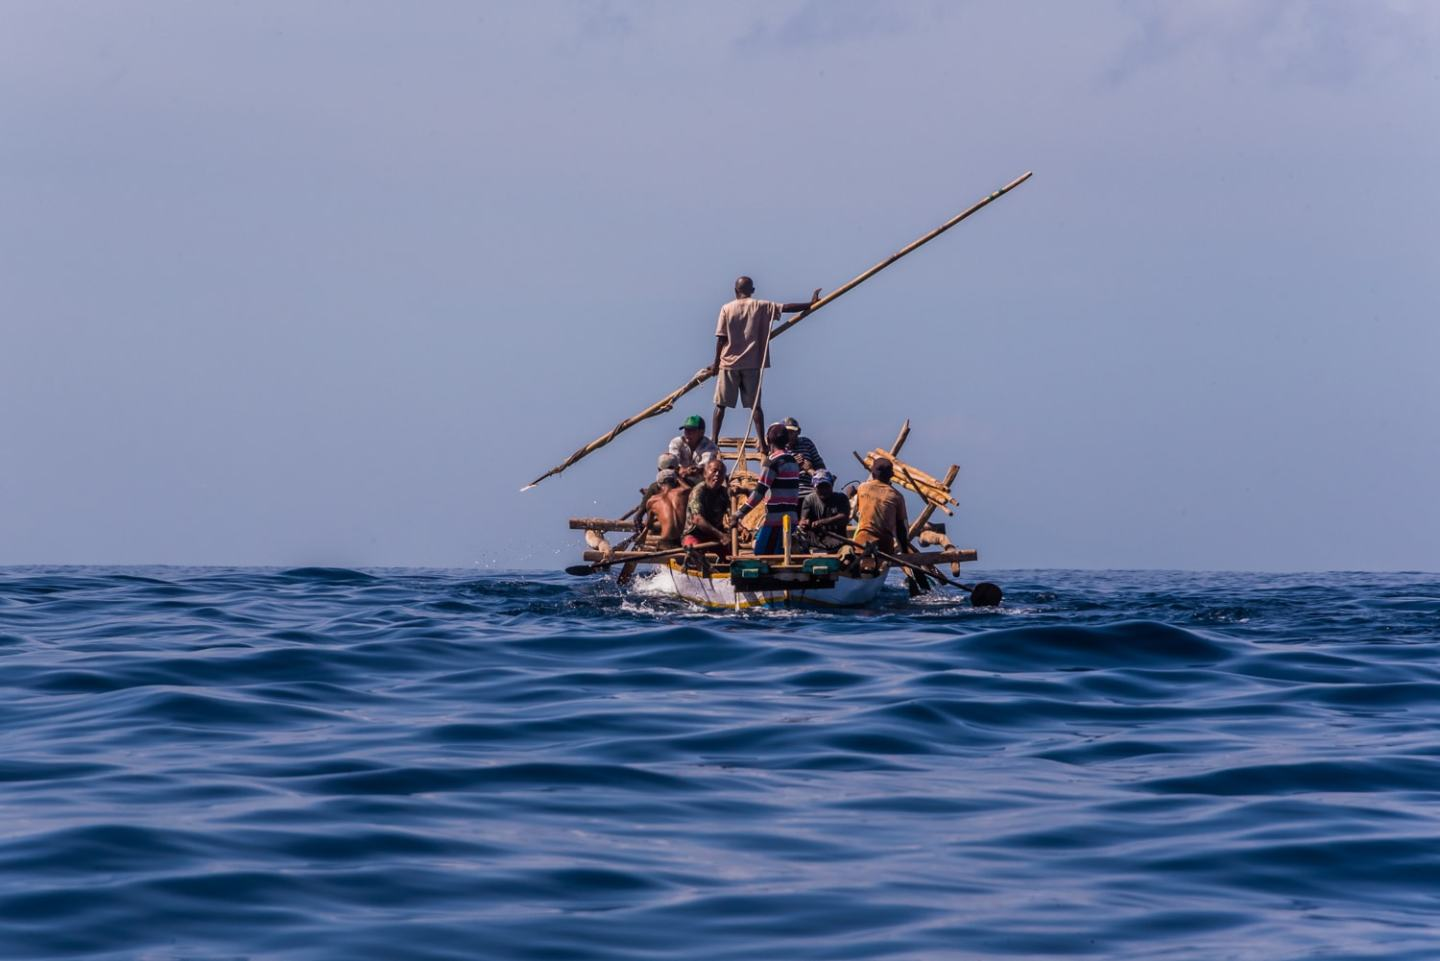 Lamafa - The world's last traditional whale hunters